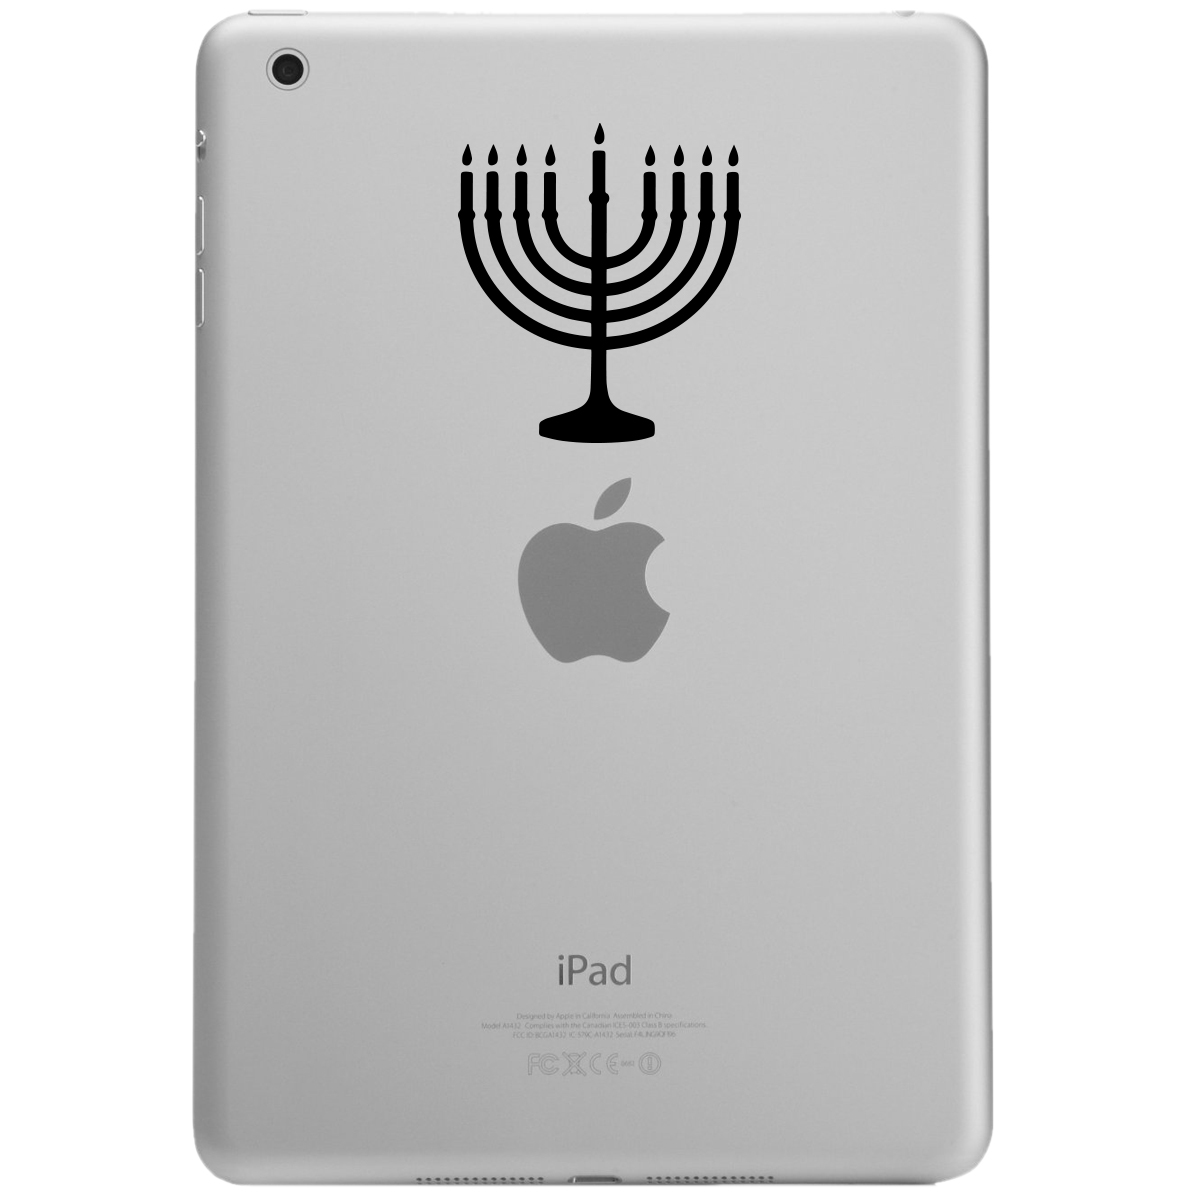 Jewish Hanukkah Menorah Silhouette iPad Tablet Vinyl Sticker Decal